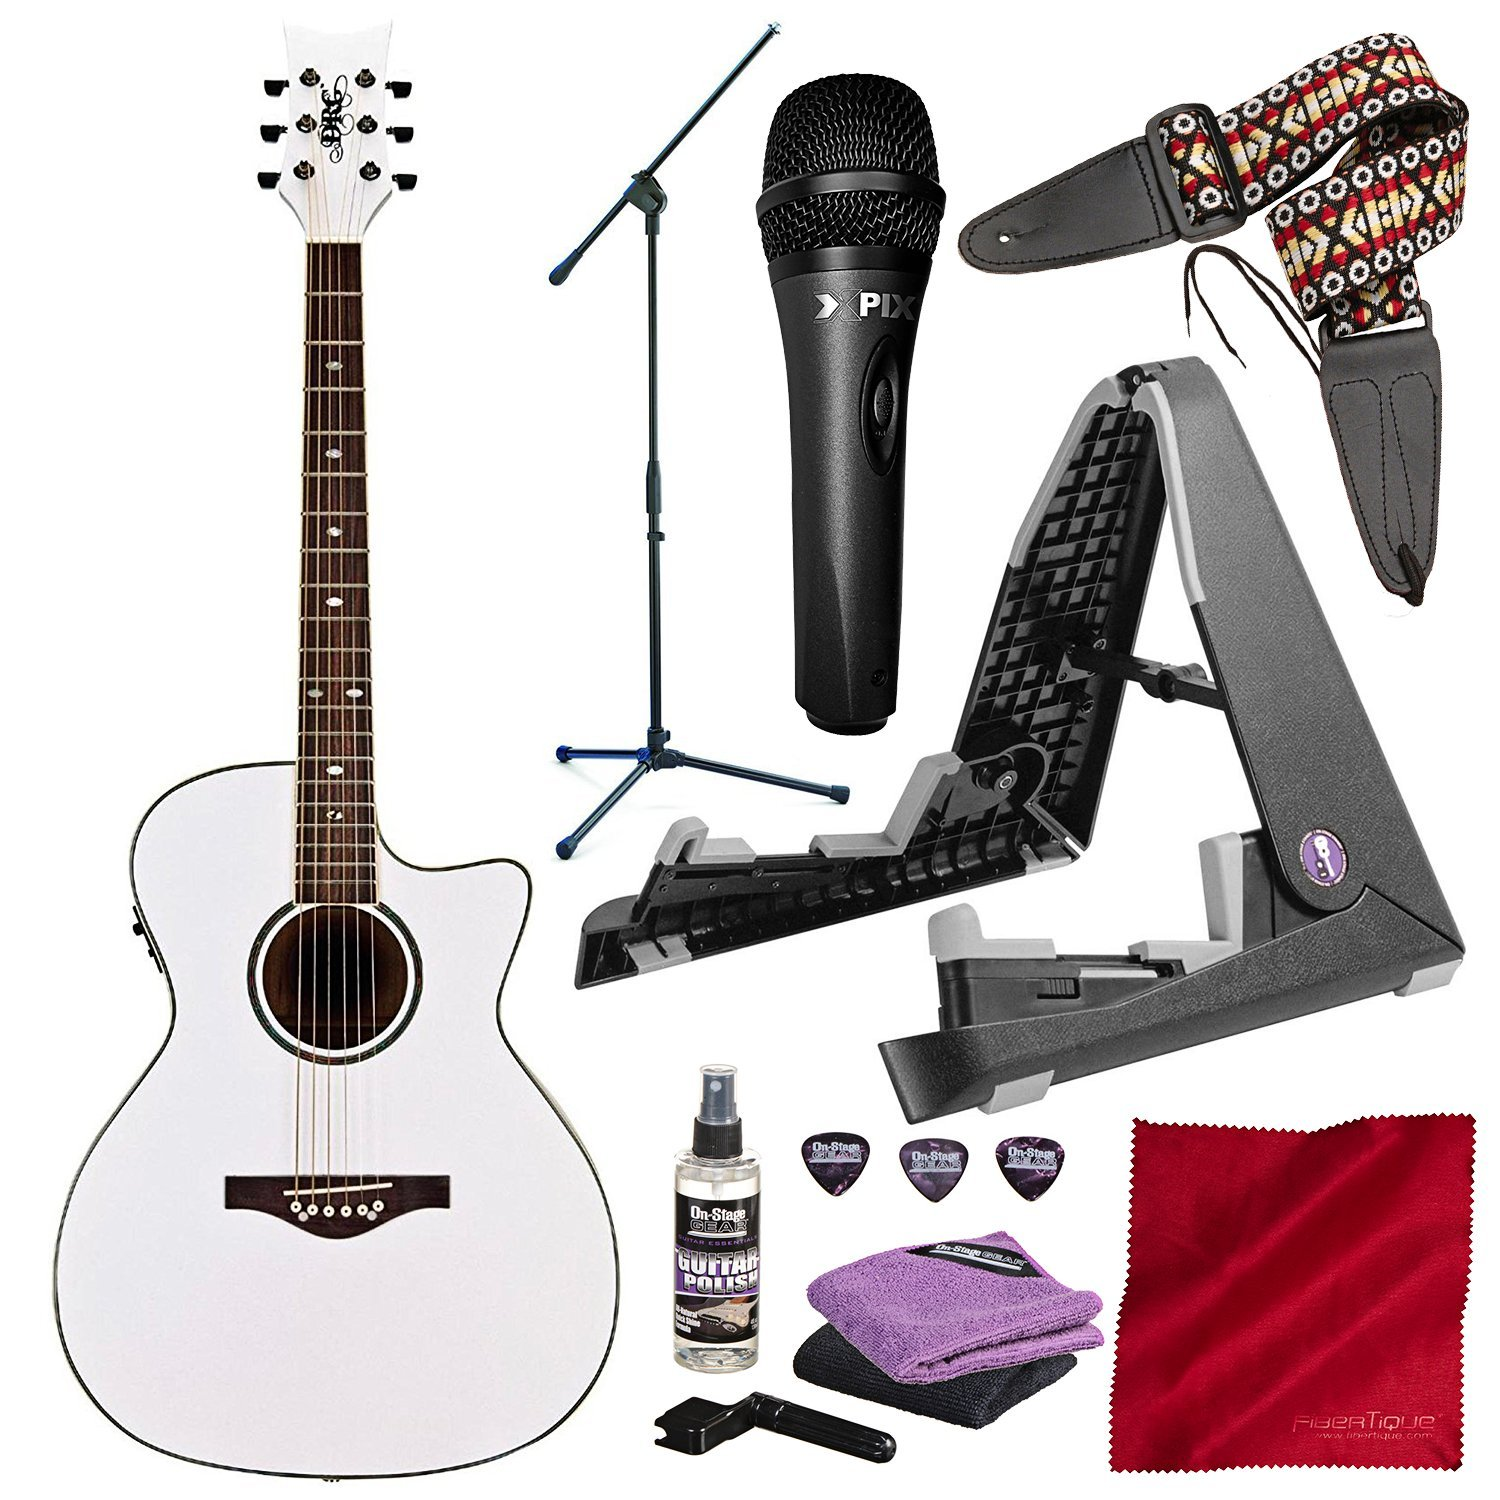 Daisy Rock Wildwood Acoustic/Electric Guitar Pearl White (DR6274-U) with Xpix Vocal Condenser Microphone, Guitar & Mic Stand Deluxe Bundle by Daisy Rock - Photo Savings